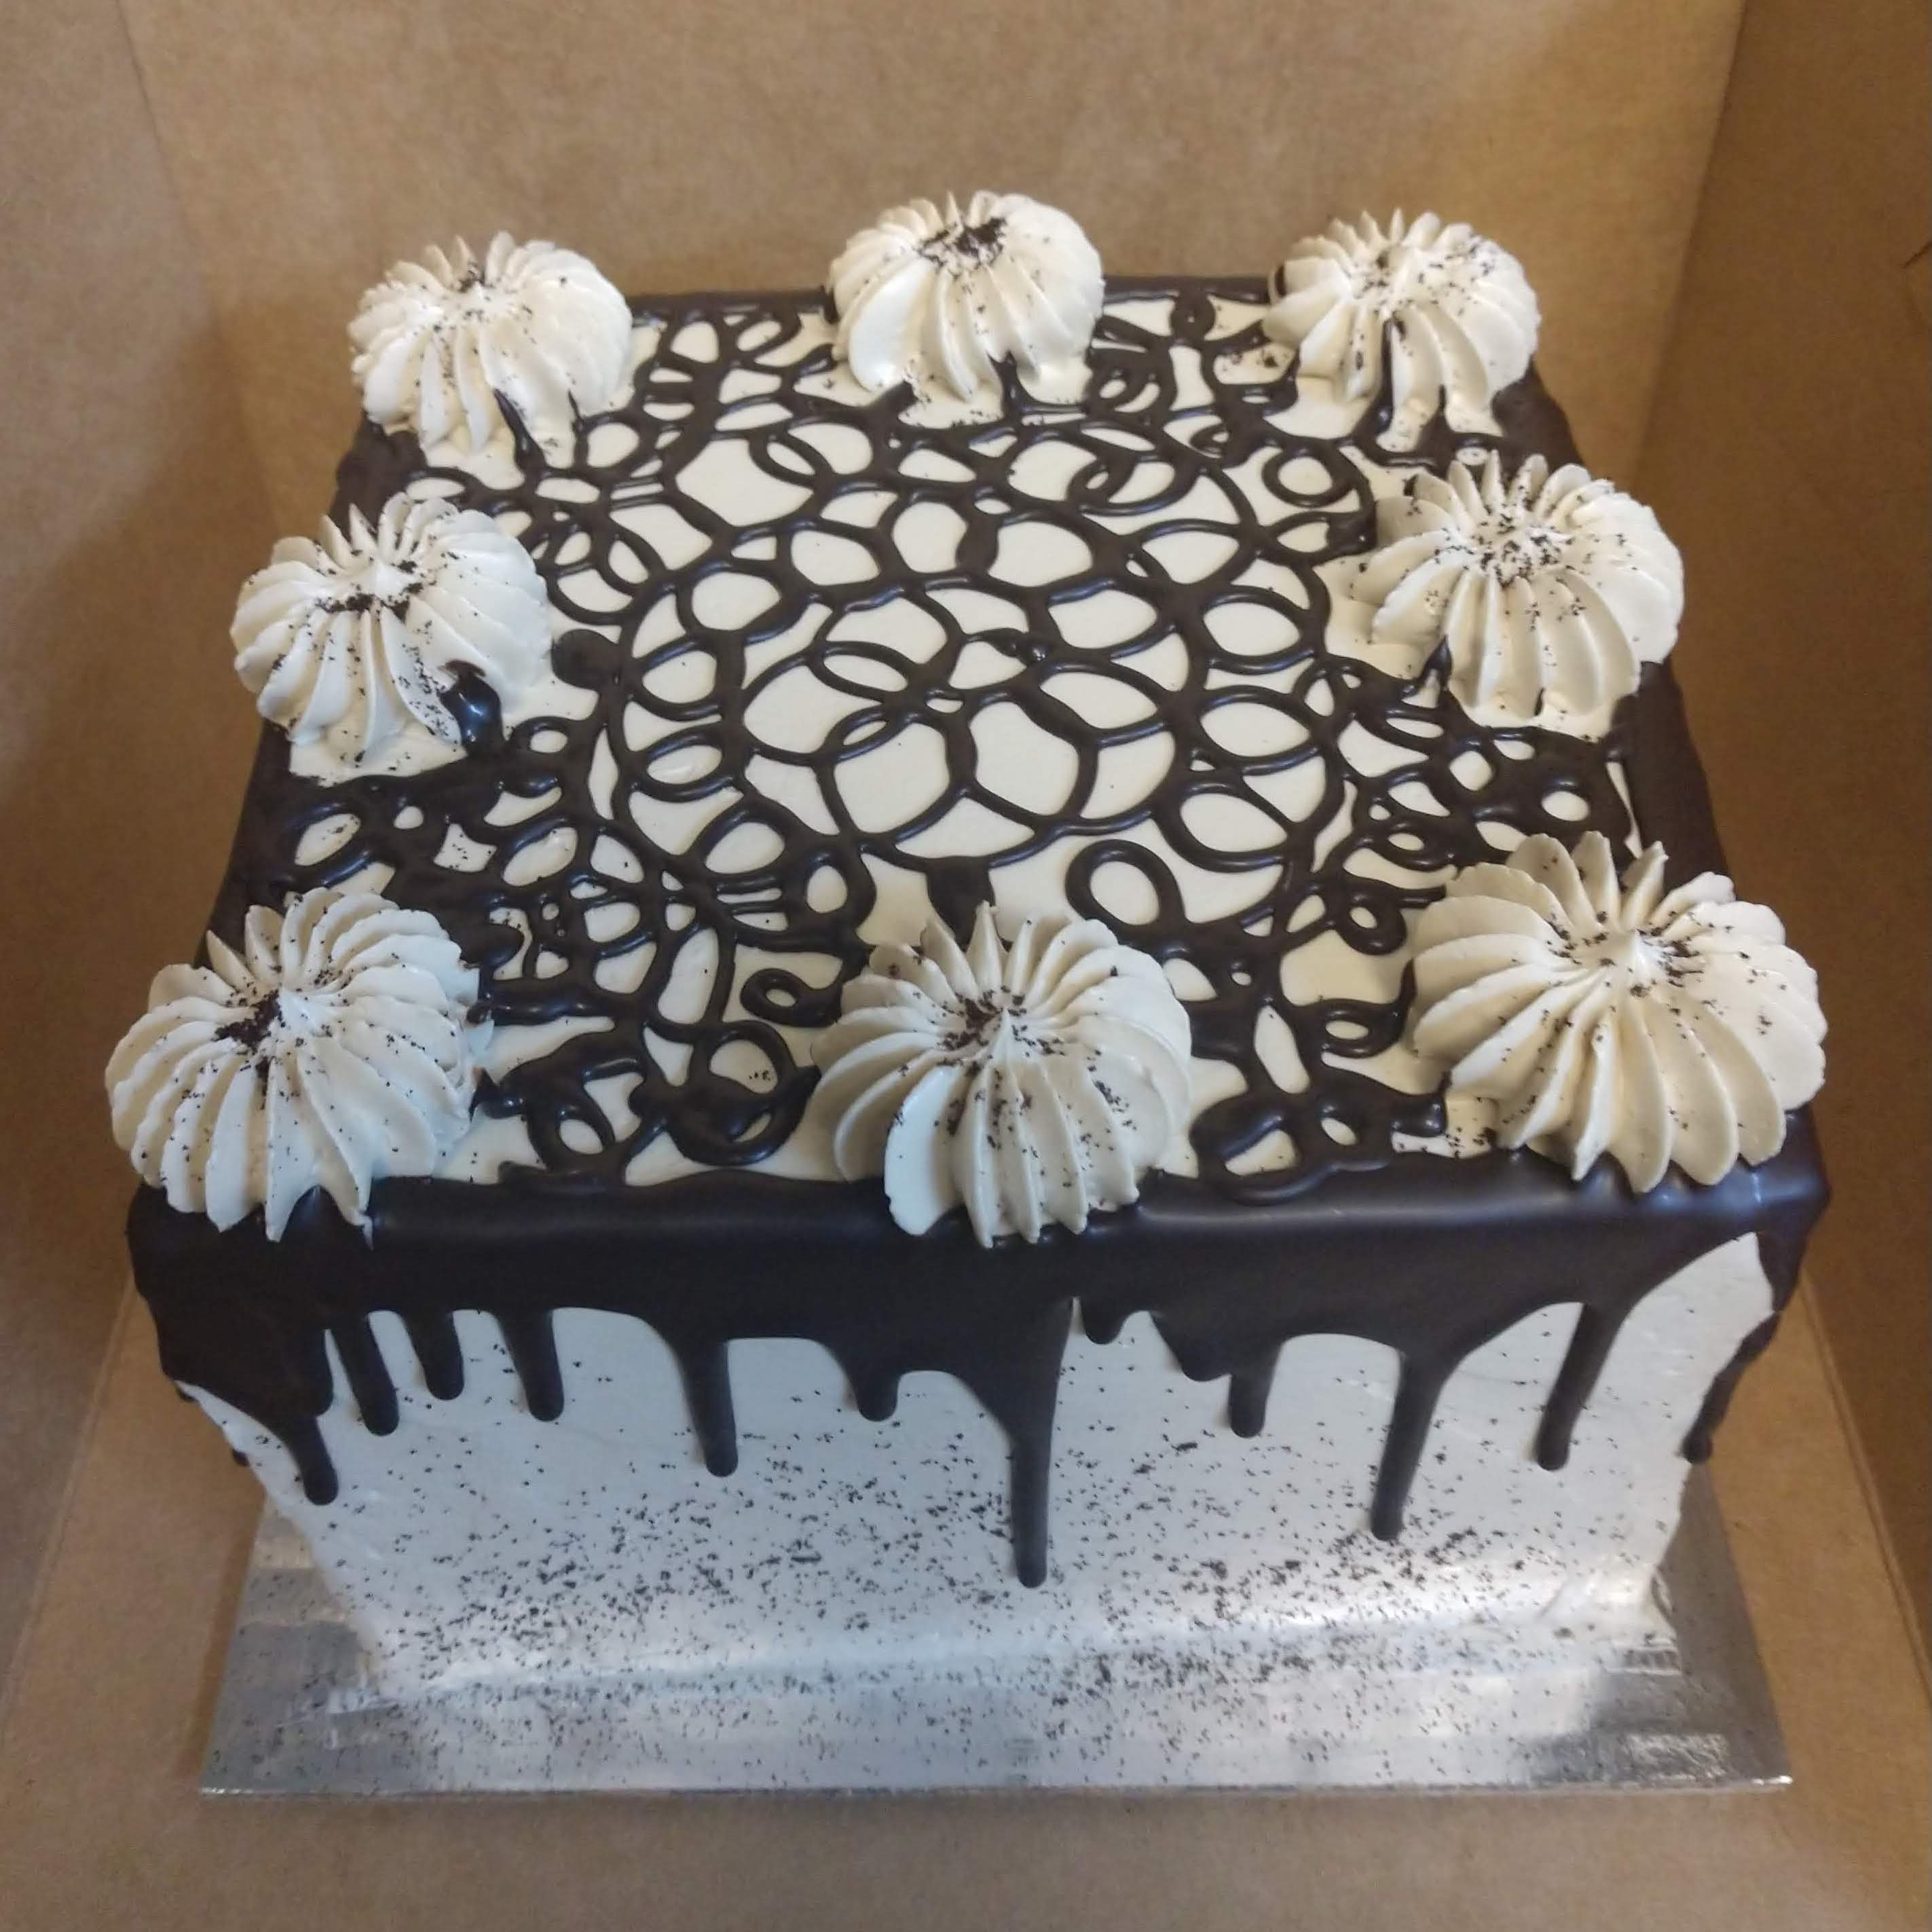 6in square cake with oreo frosting and choc. drizzle